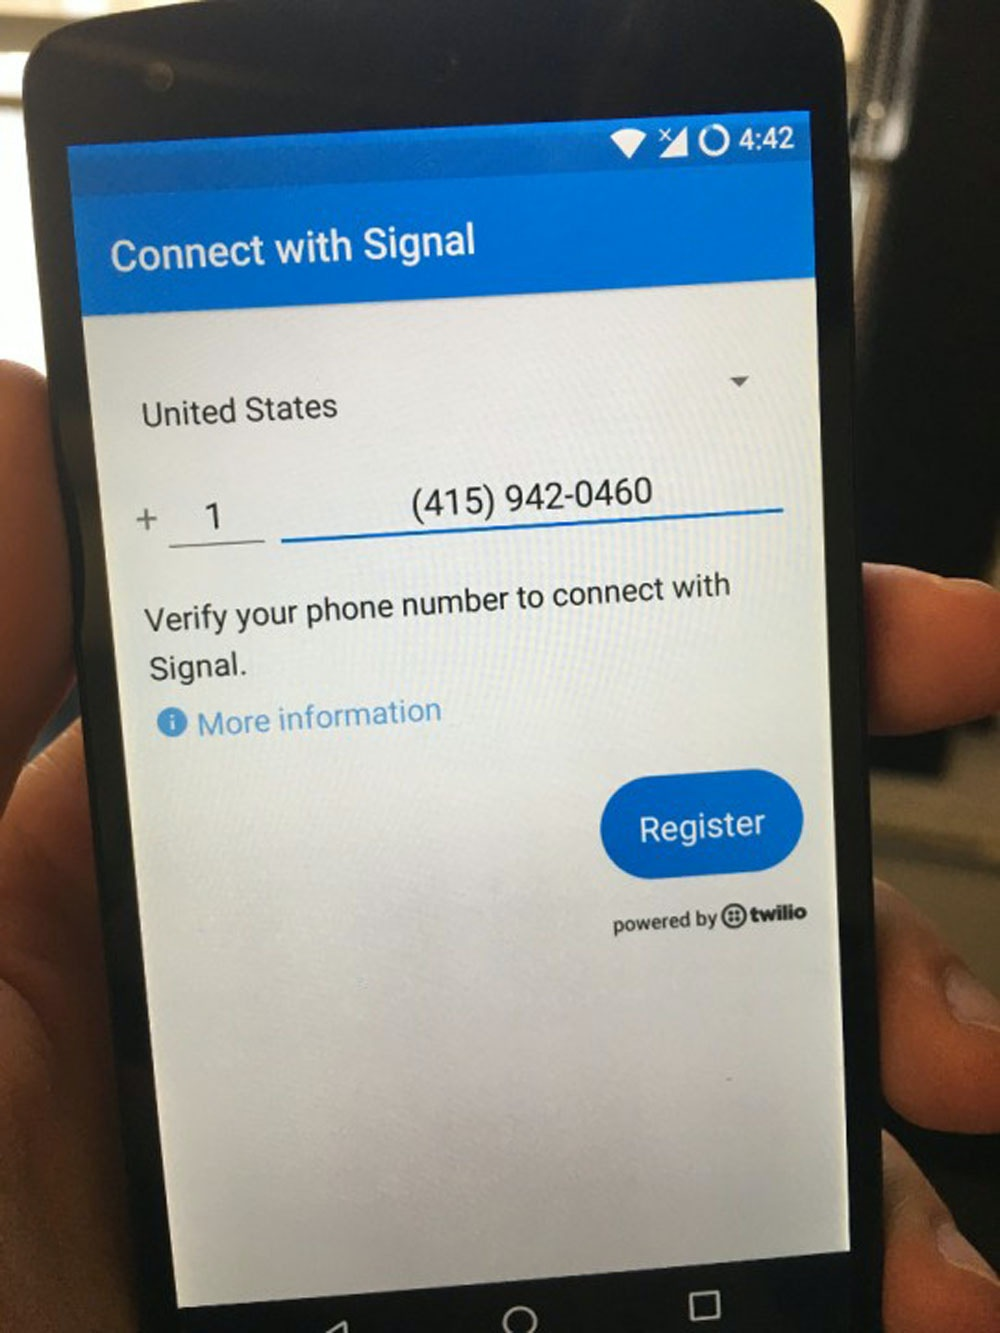 Talk To Strangers on Signal With a Public Phone Number